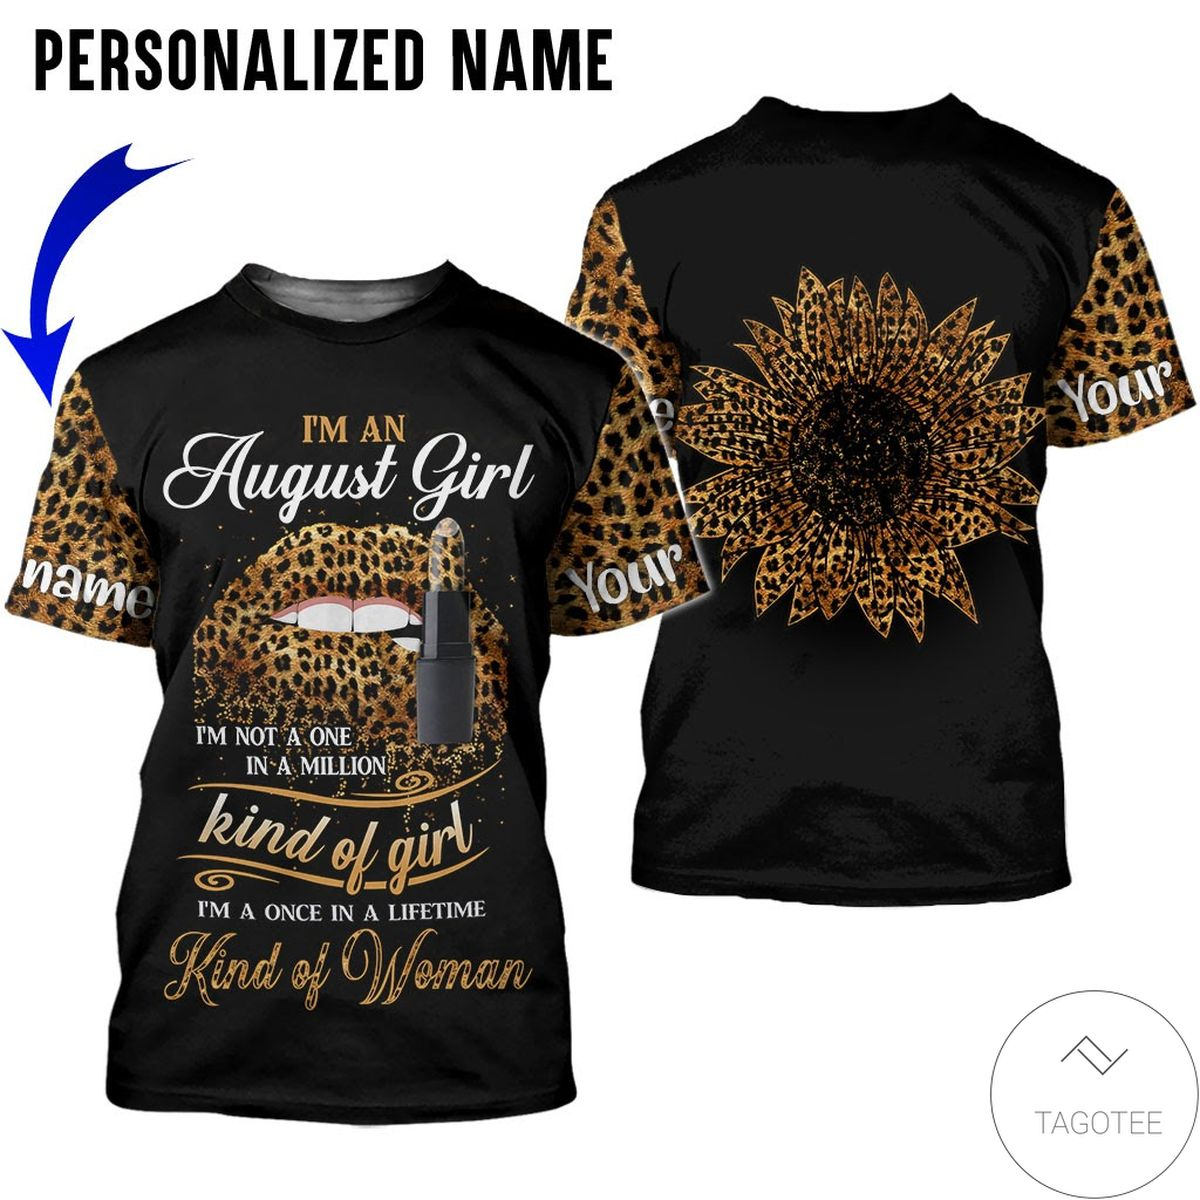 Personalized Name I'm August Girl Kind Of Girl All Over Print Hoodiex